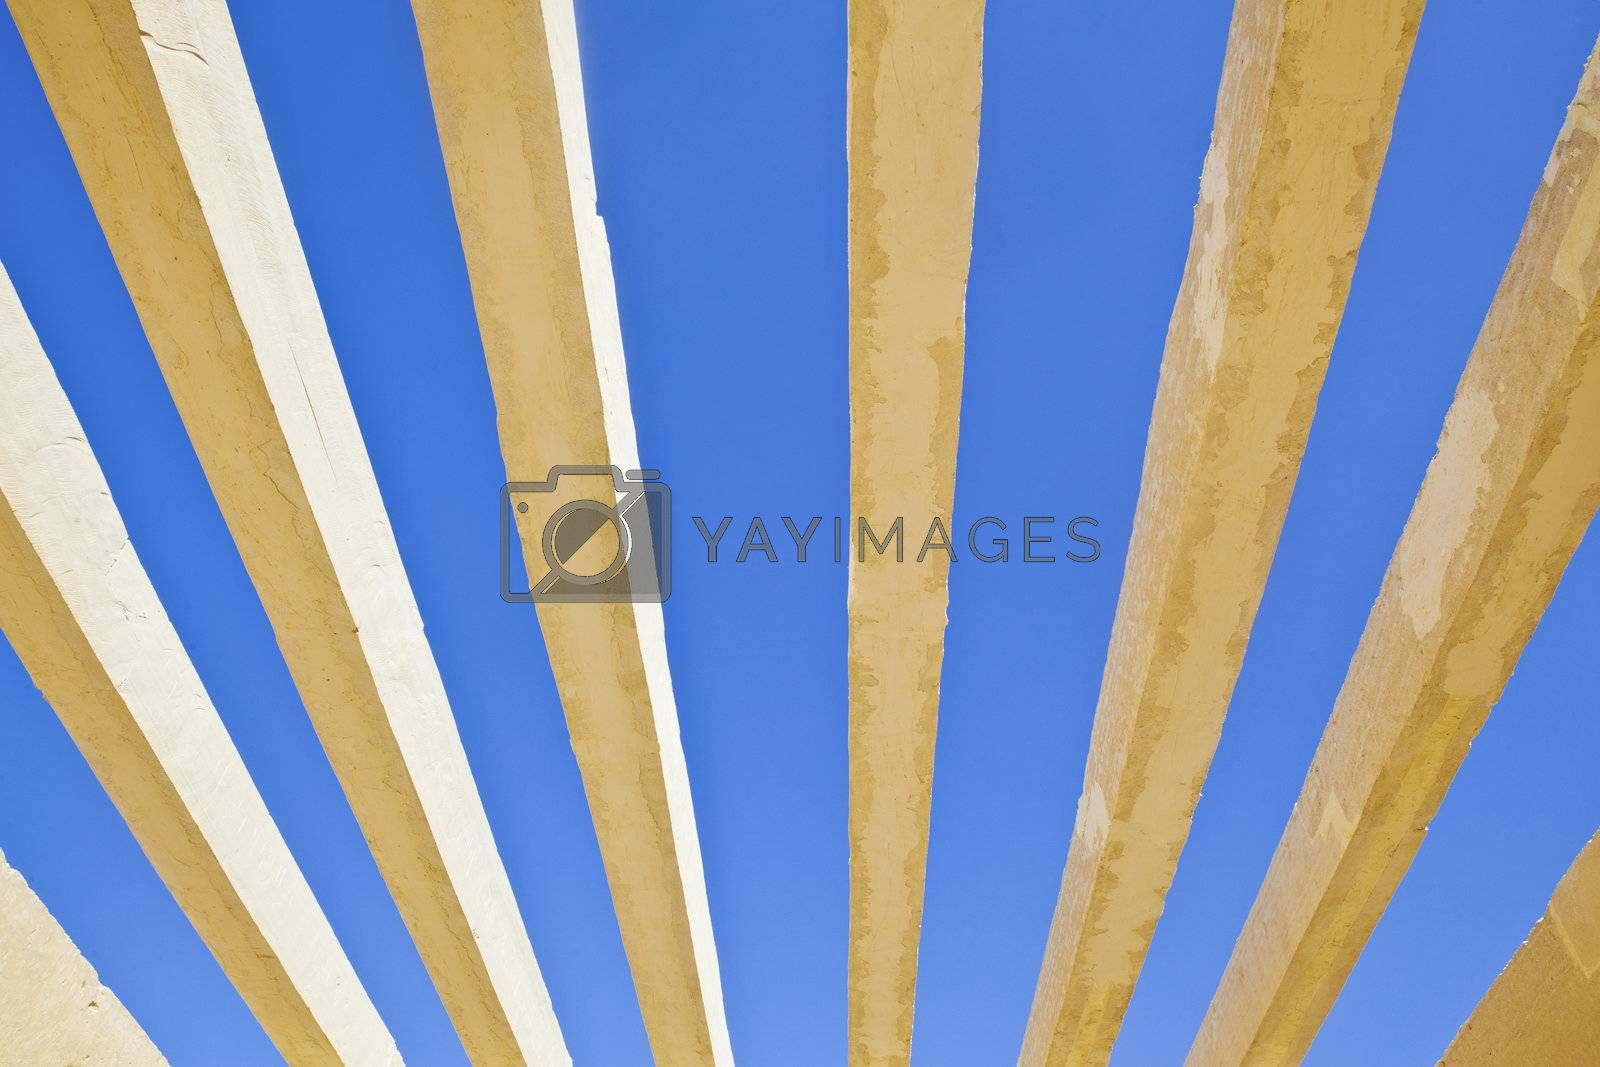 Horizontal detail of architecture to the roof of the public access to Shree Dwarakadheesh Krishna Temple at Dwarka Gujarat India. With no shelter creats an abstract patten of the concrete box work against the rich blue sky withour clouds